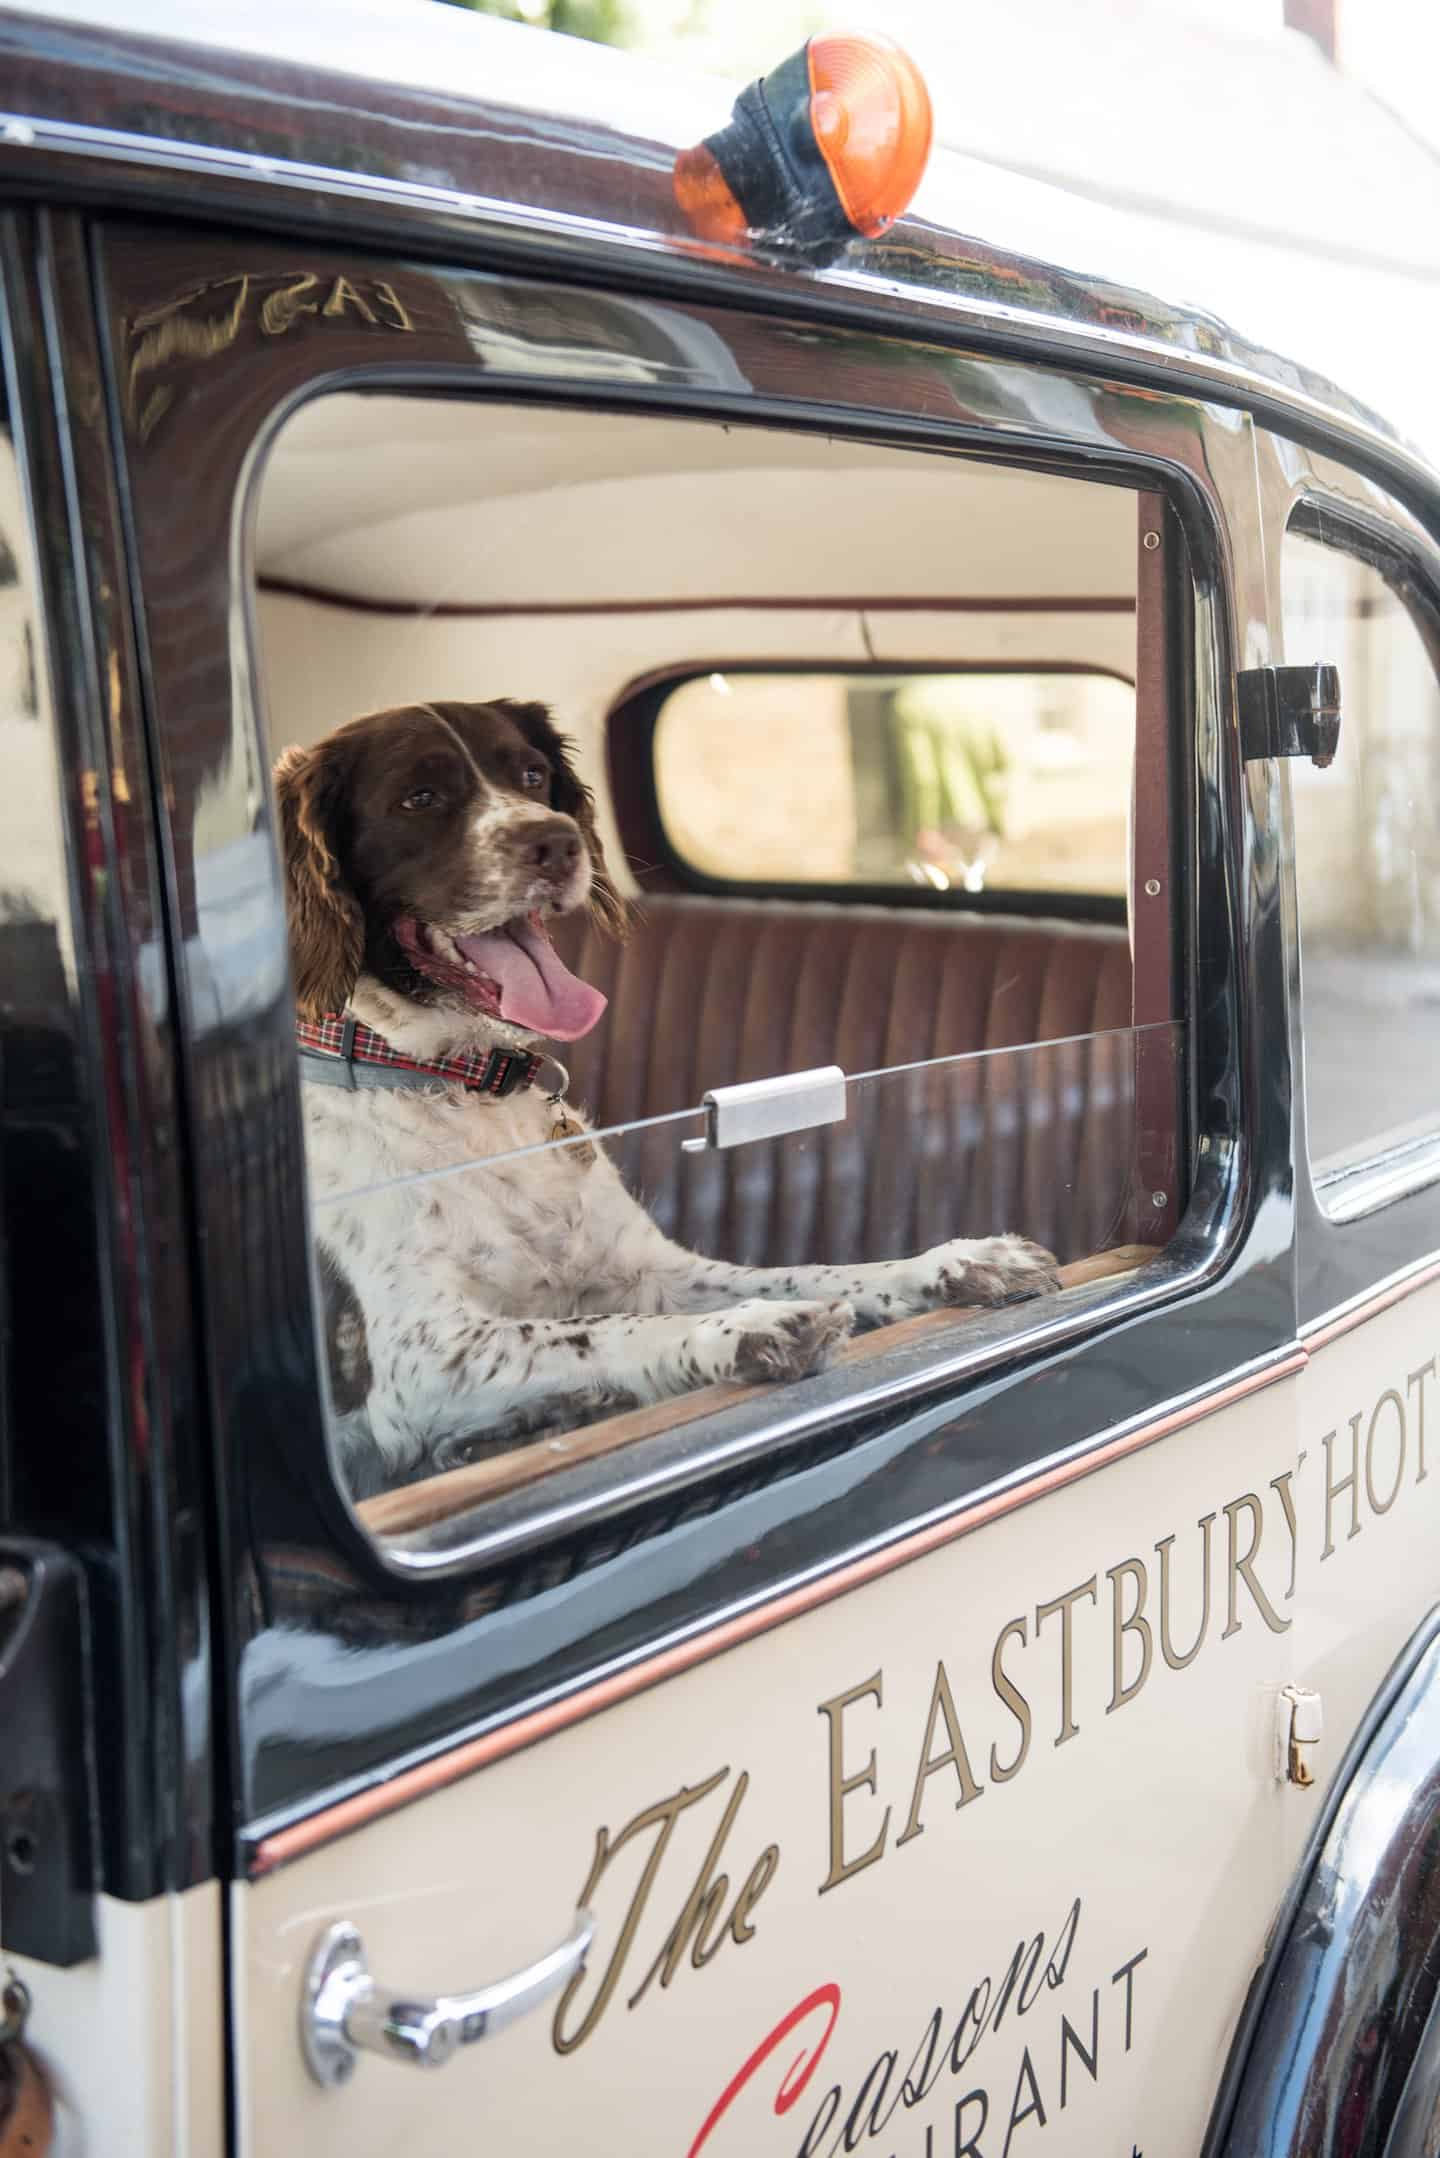 Four-legged guests arrive in style at The Eastbury Hotel